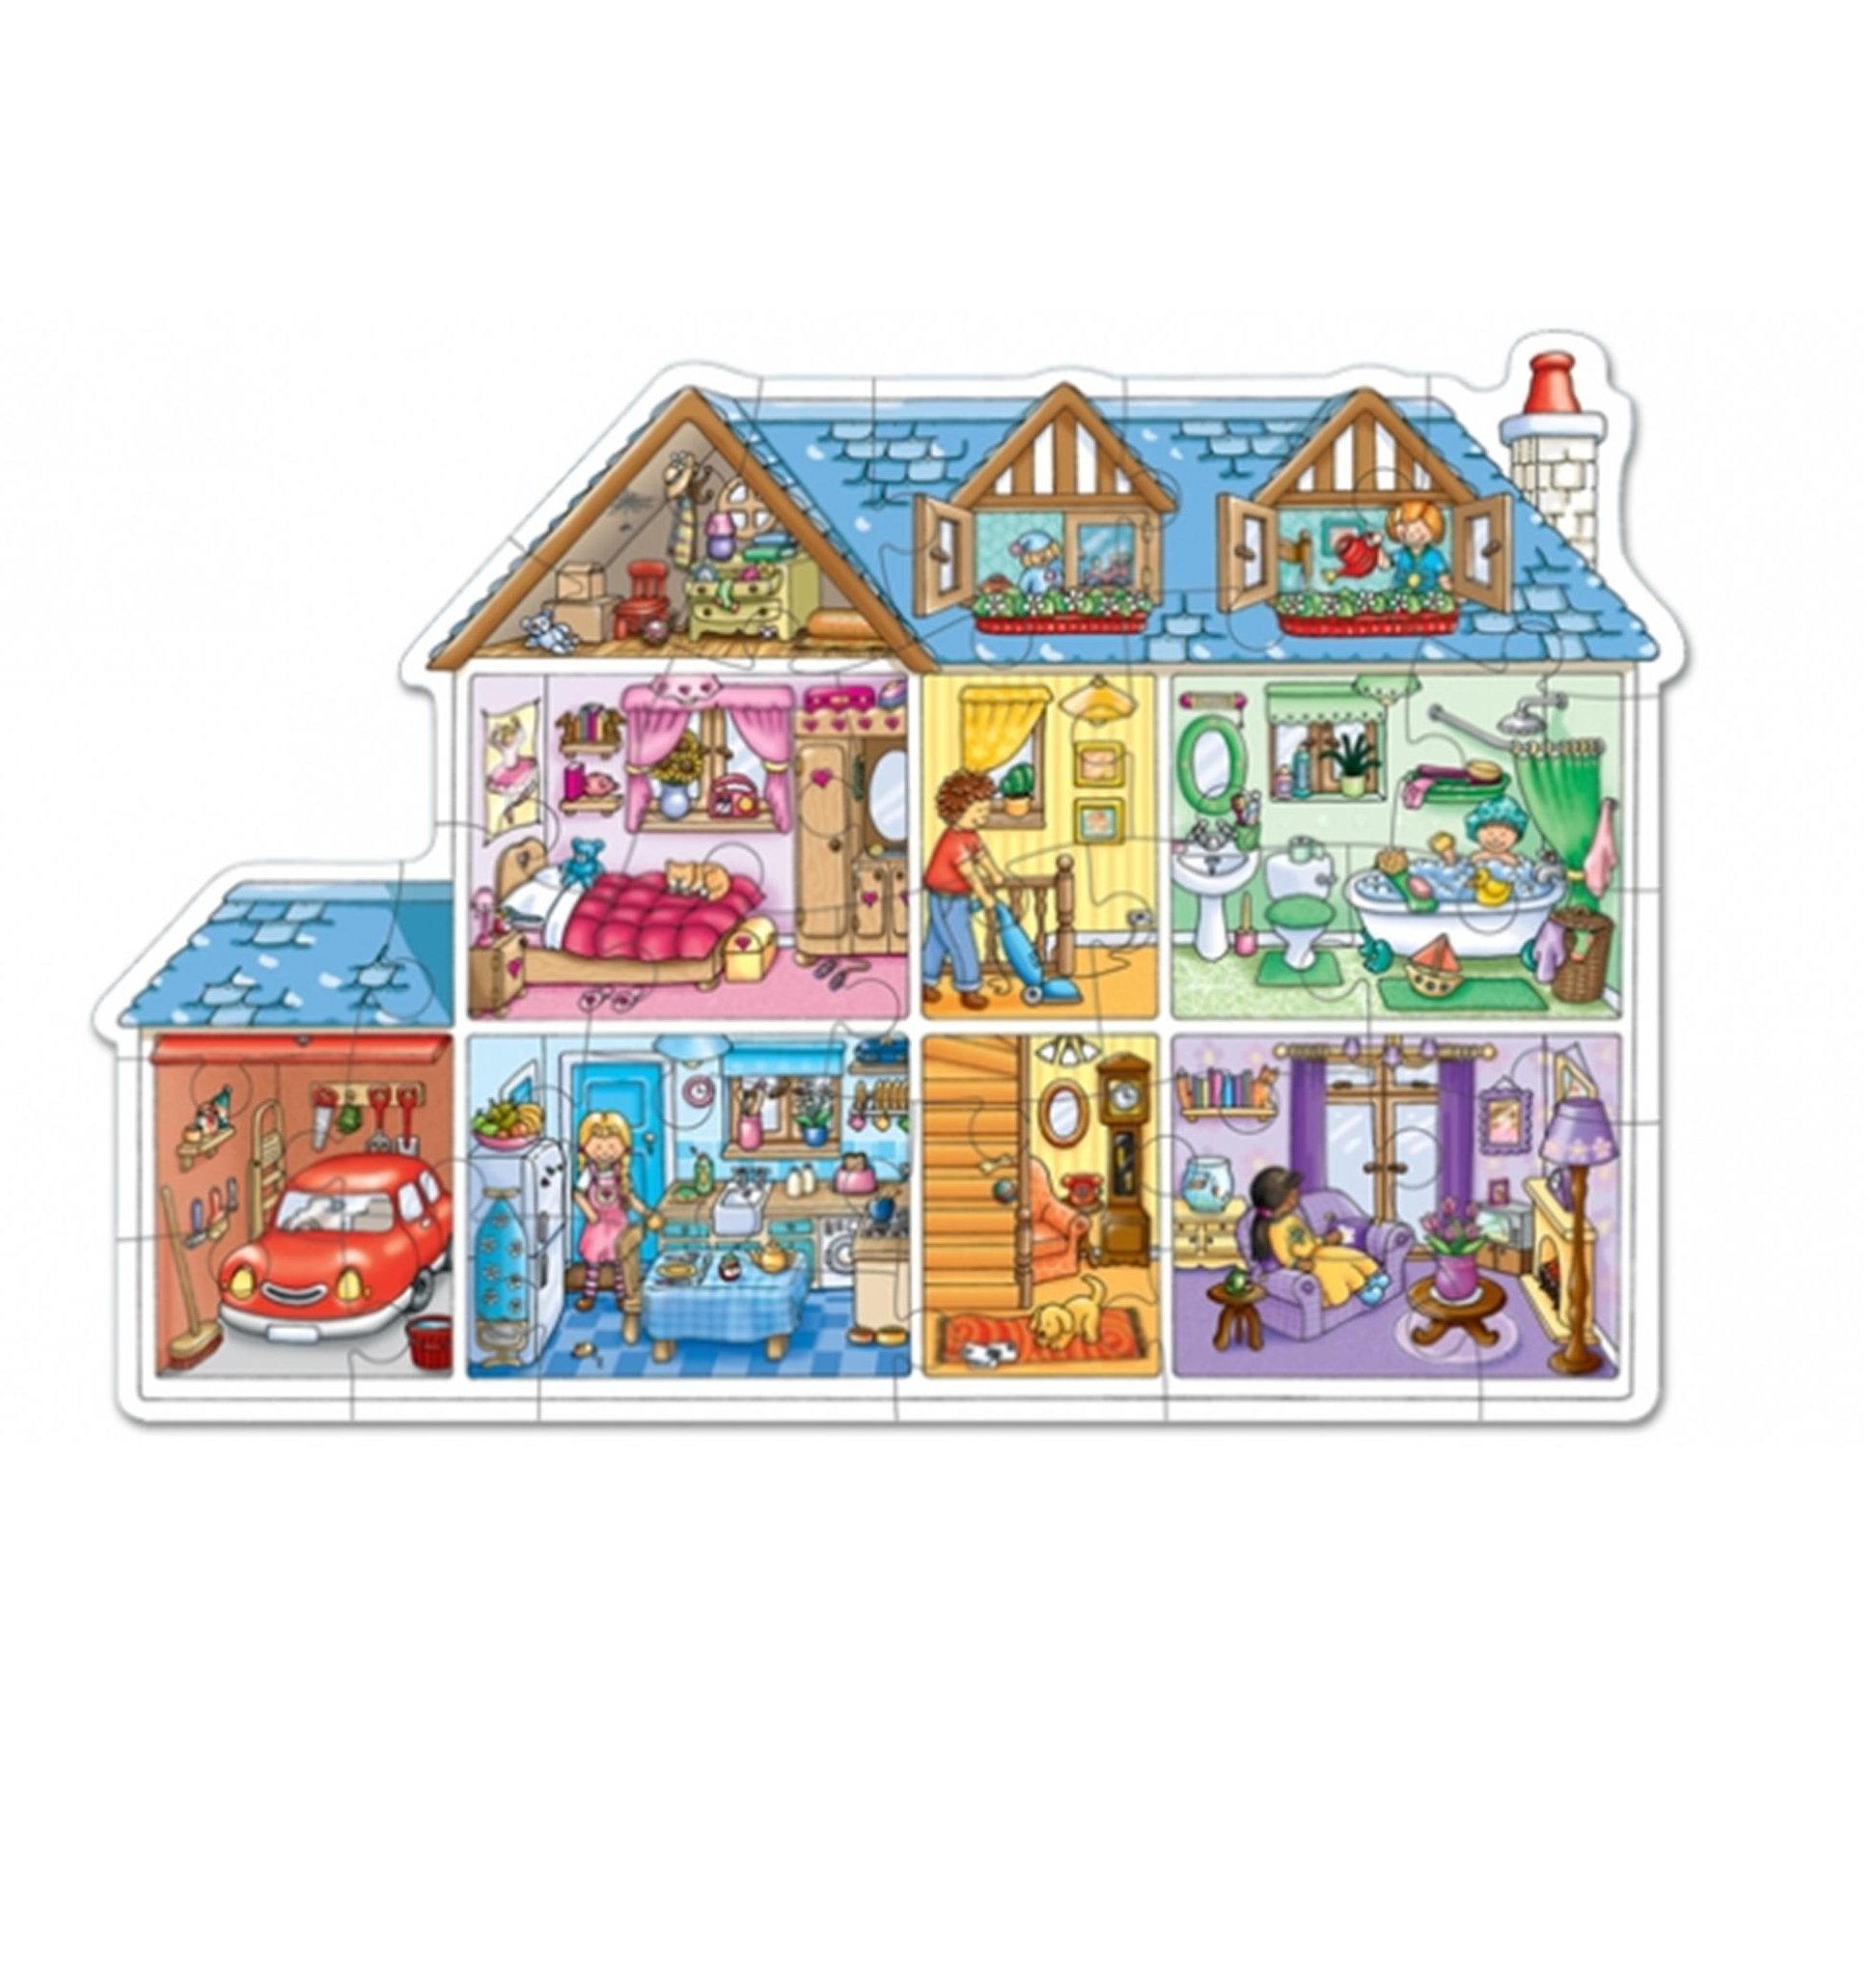 Dolls House Floor Puzzle SAVE R60.00 (20%)